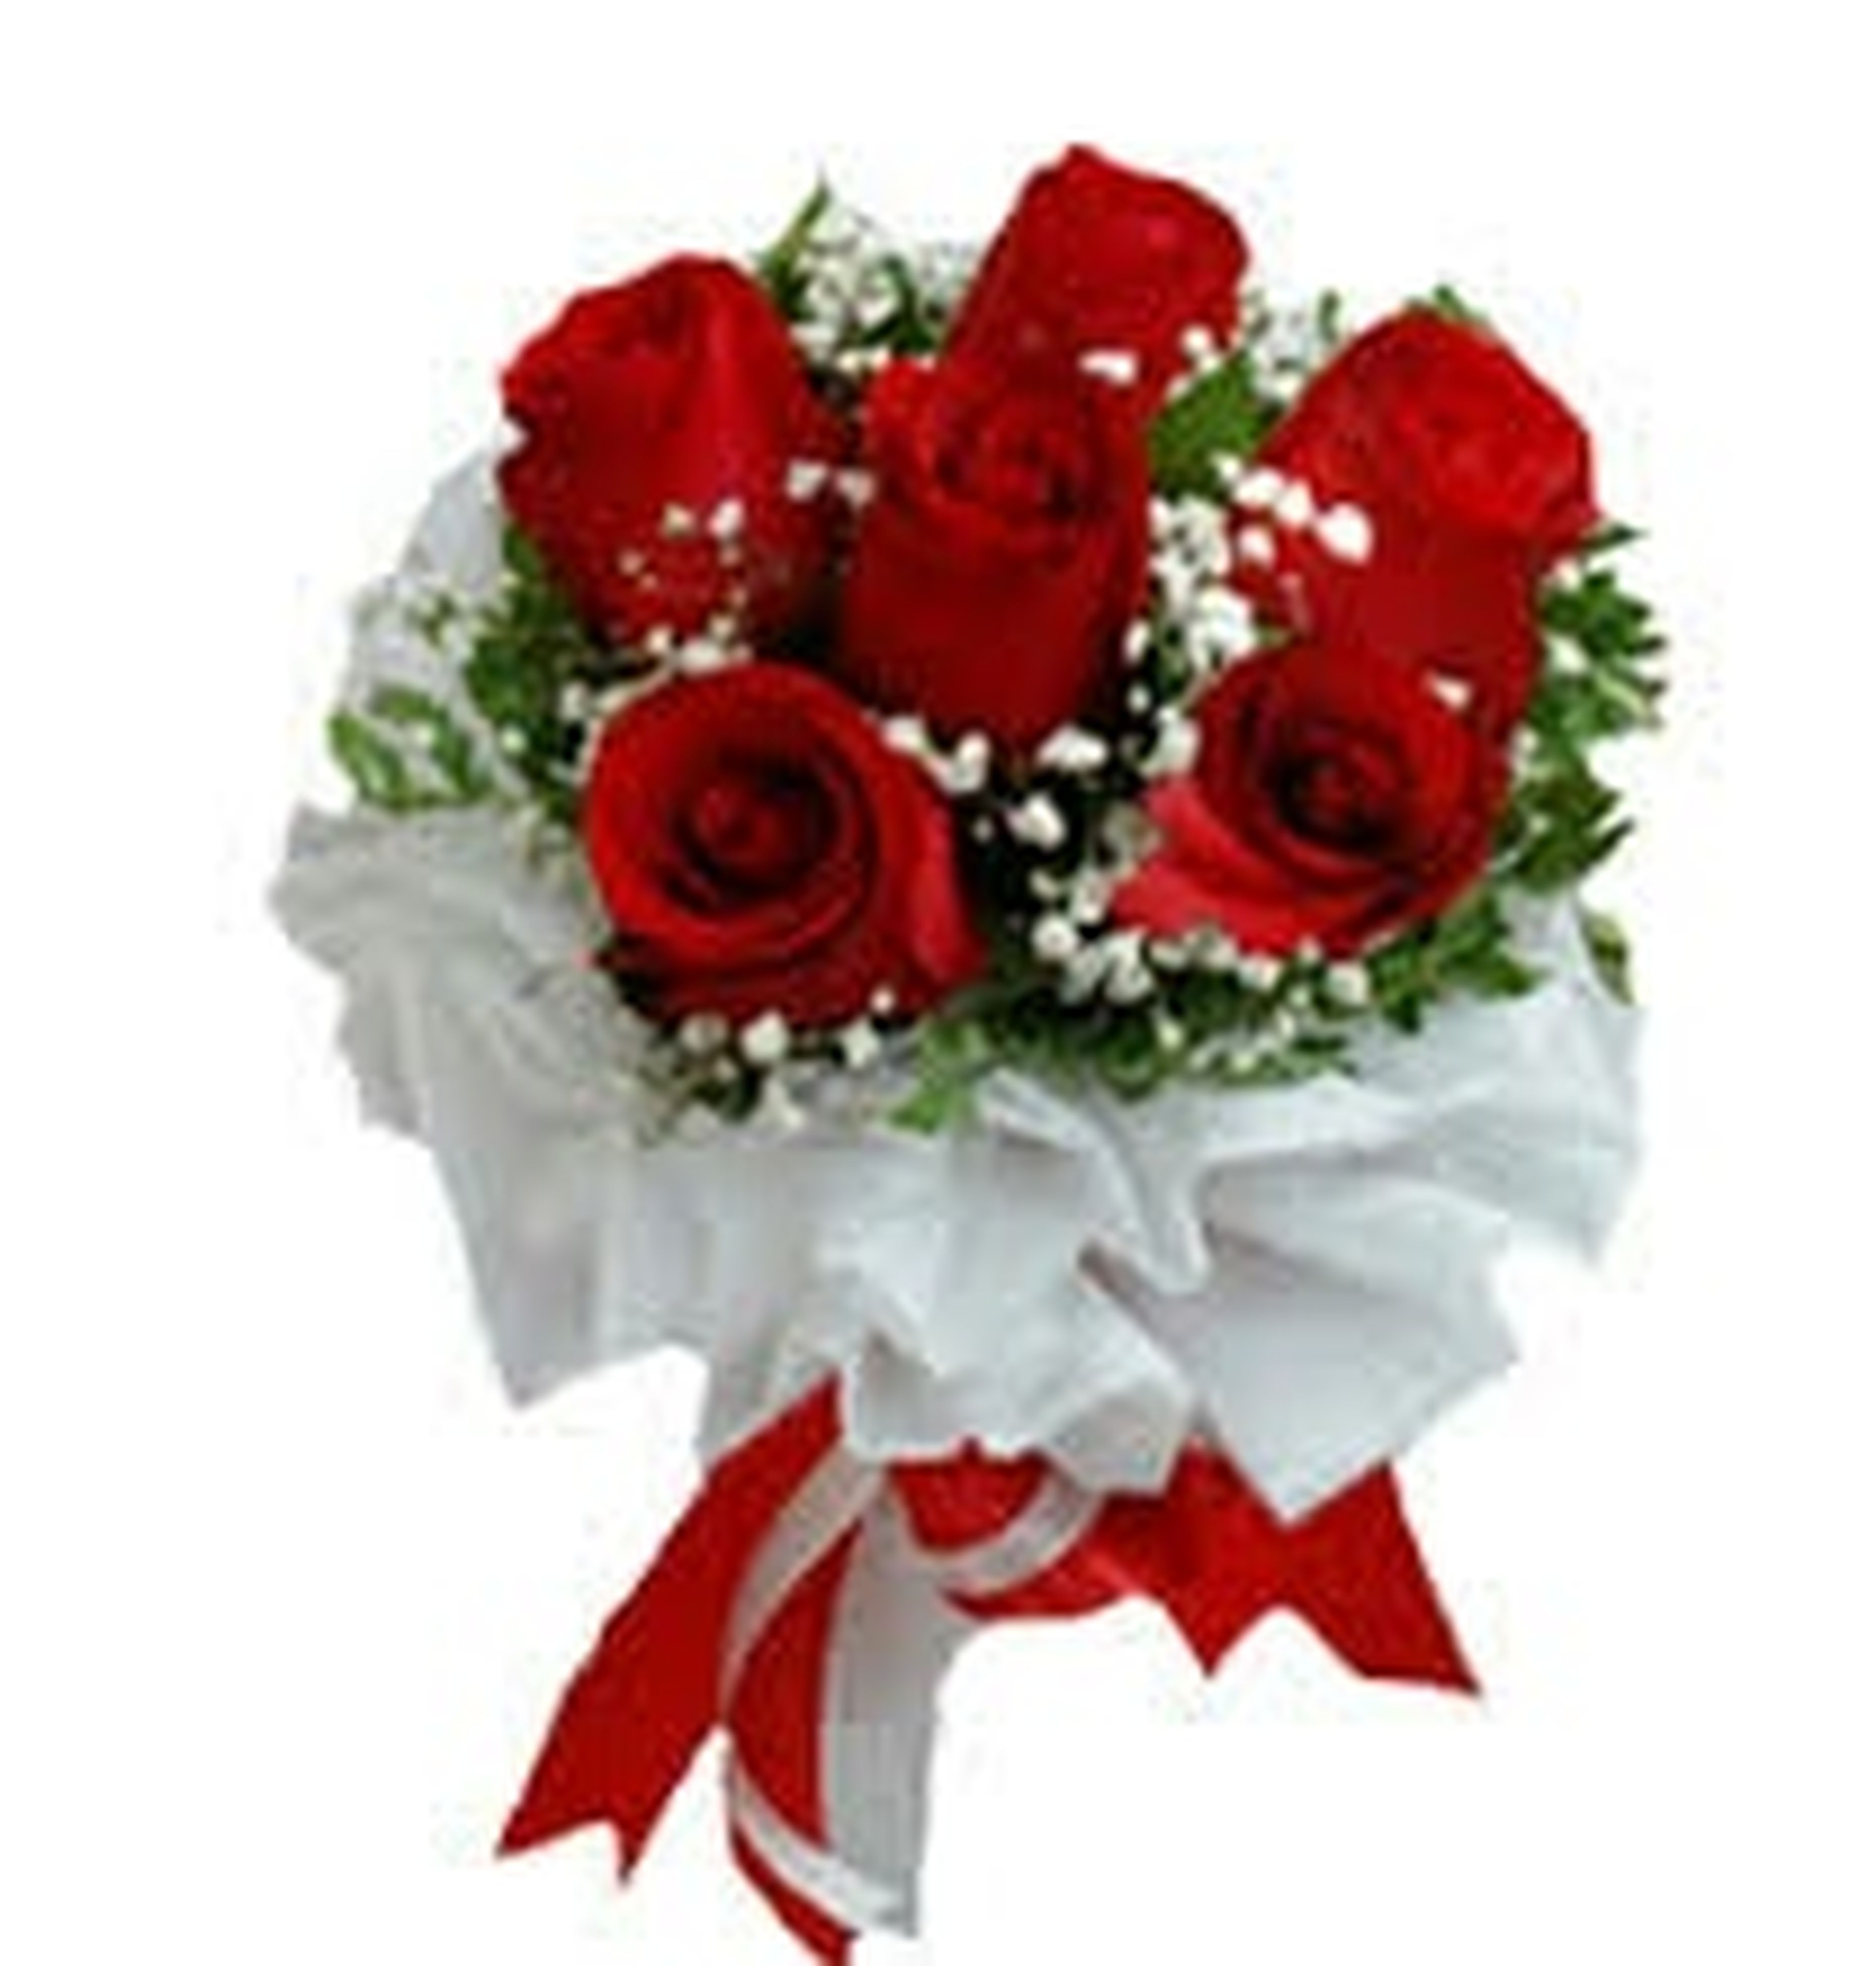 freshness, white background, flower, studio shot, red, petal, rose - flower, close-up, flower head, indoors, fragility, rose, still life, beauty in nature, no people, high angle view, single flower, white color, food, sweet food